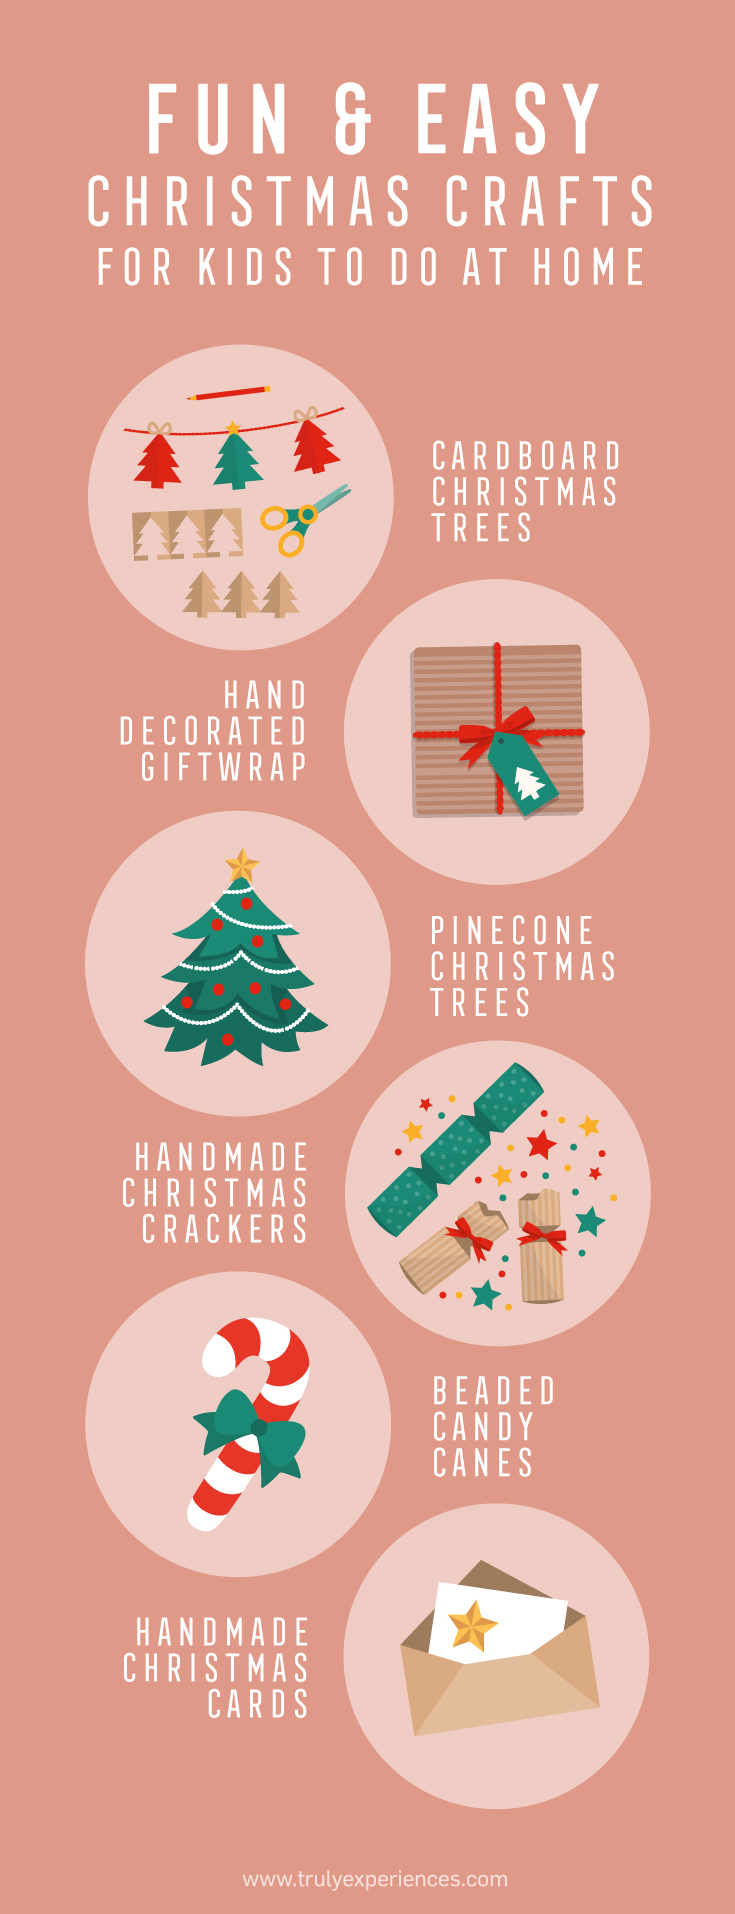 15 Fun & Easy Christmas Crafts For Kids To Do At Home